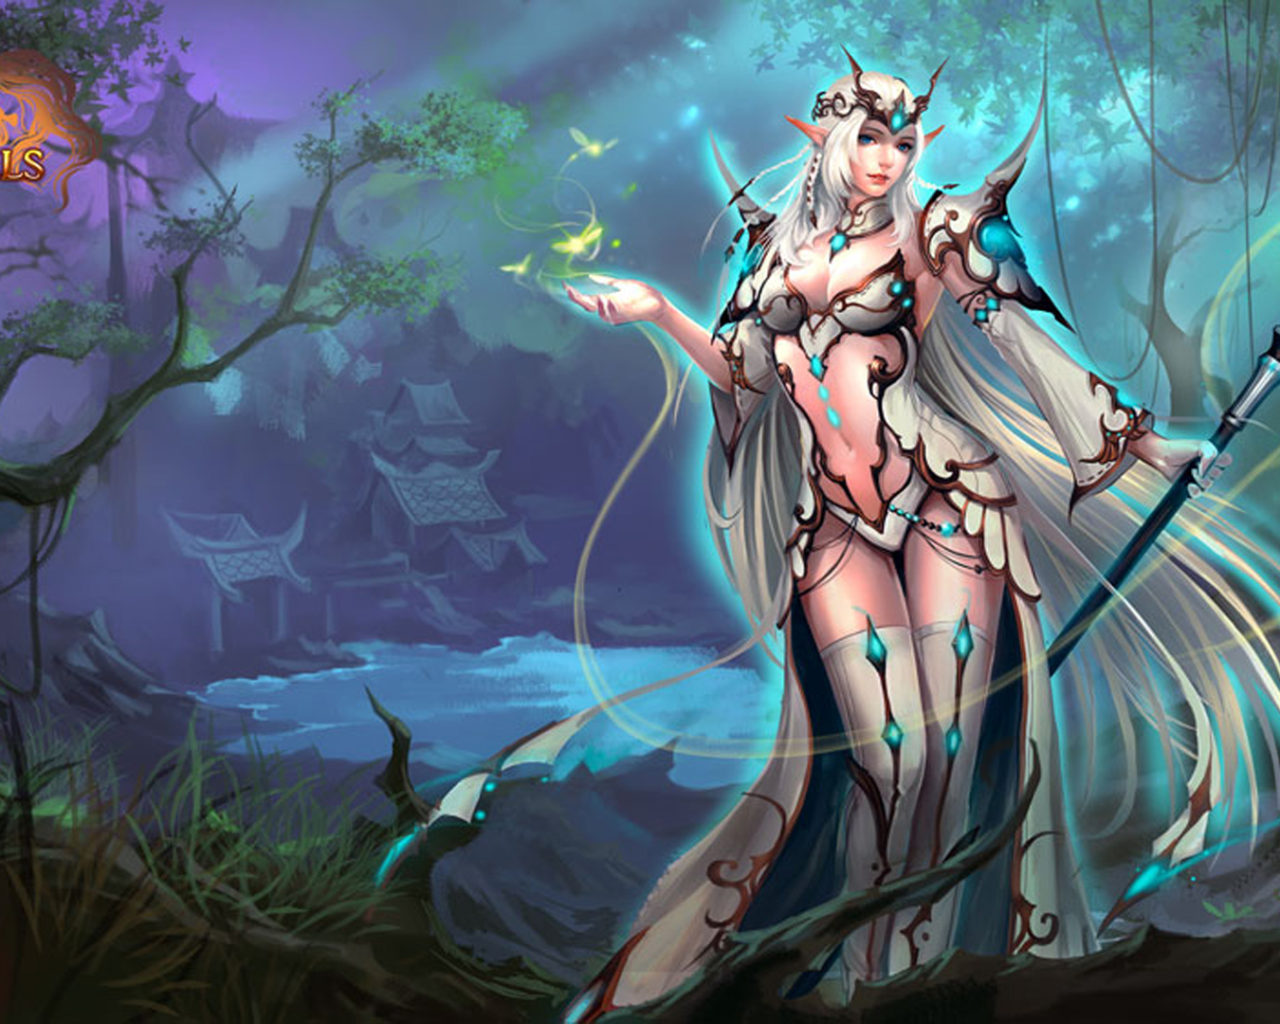 Beautiful Girl Wallpaper Hd 10 League Of Angels 2 Caracters Heroes Thera Girl Video Game